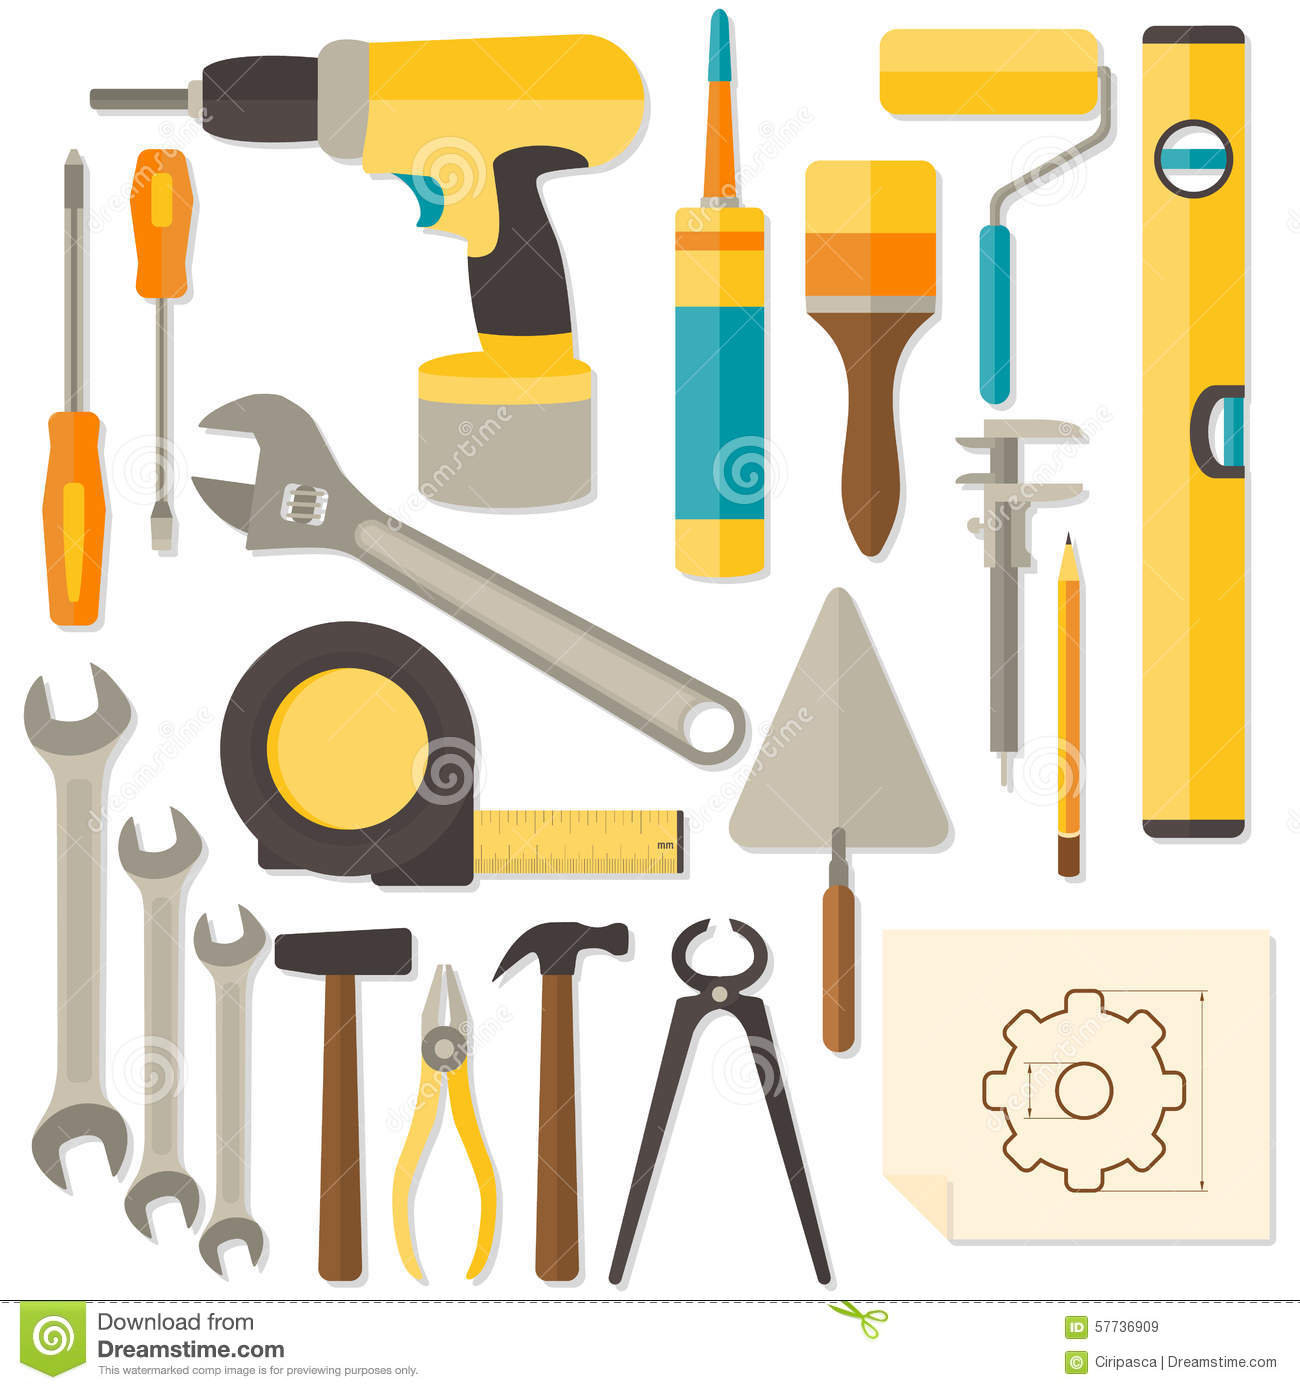 Home renovation and diy royalty free stock image for Home architecture tools